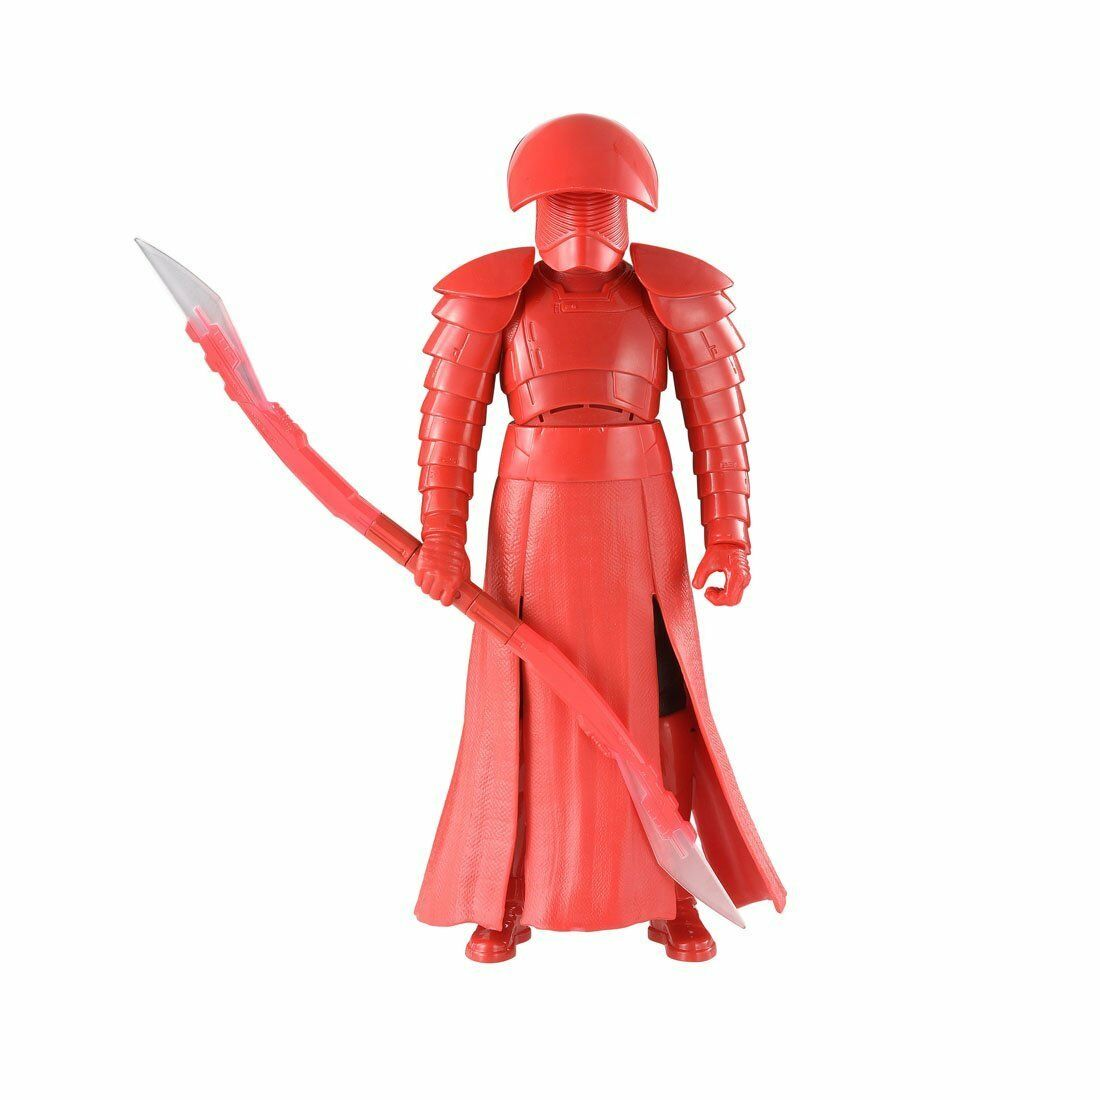 NEW Star Wars 12 inch Electronic Figure Elite Pretorian Guard about 30 cm Figure